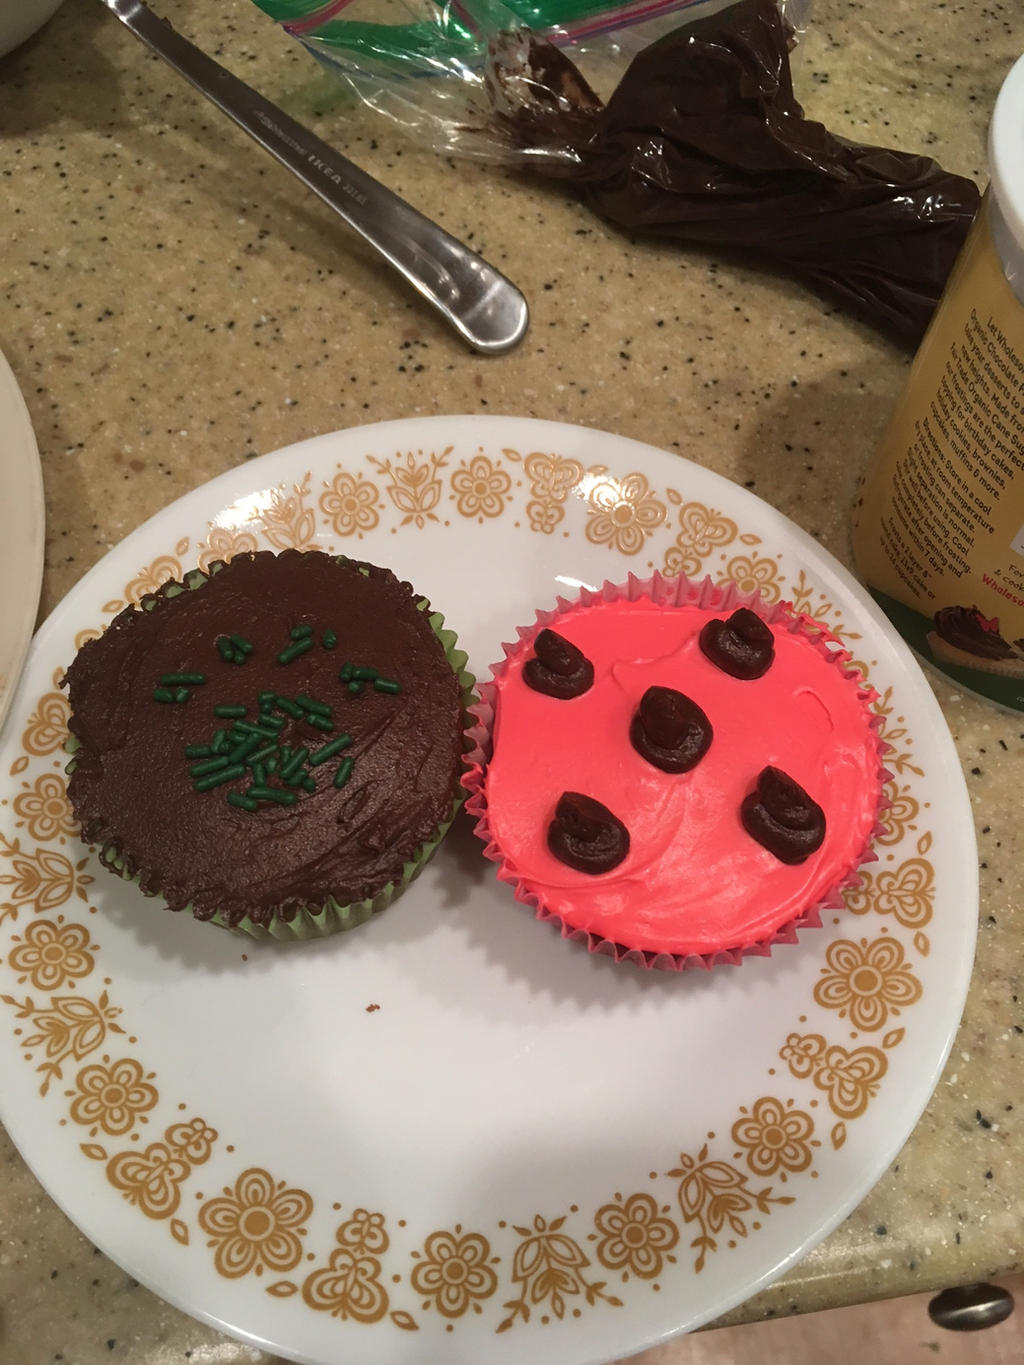 miraculous ladybug and chat noir cupcakes by miraculoussasha on